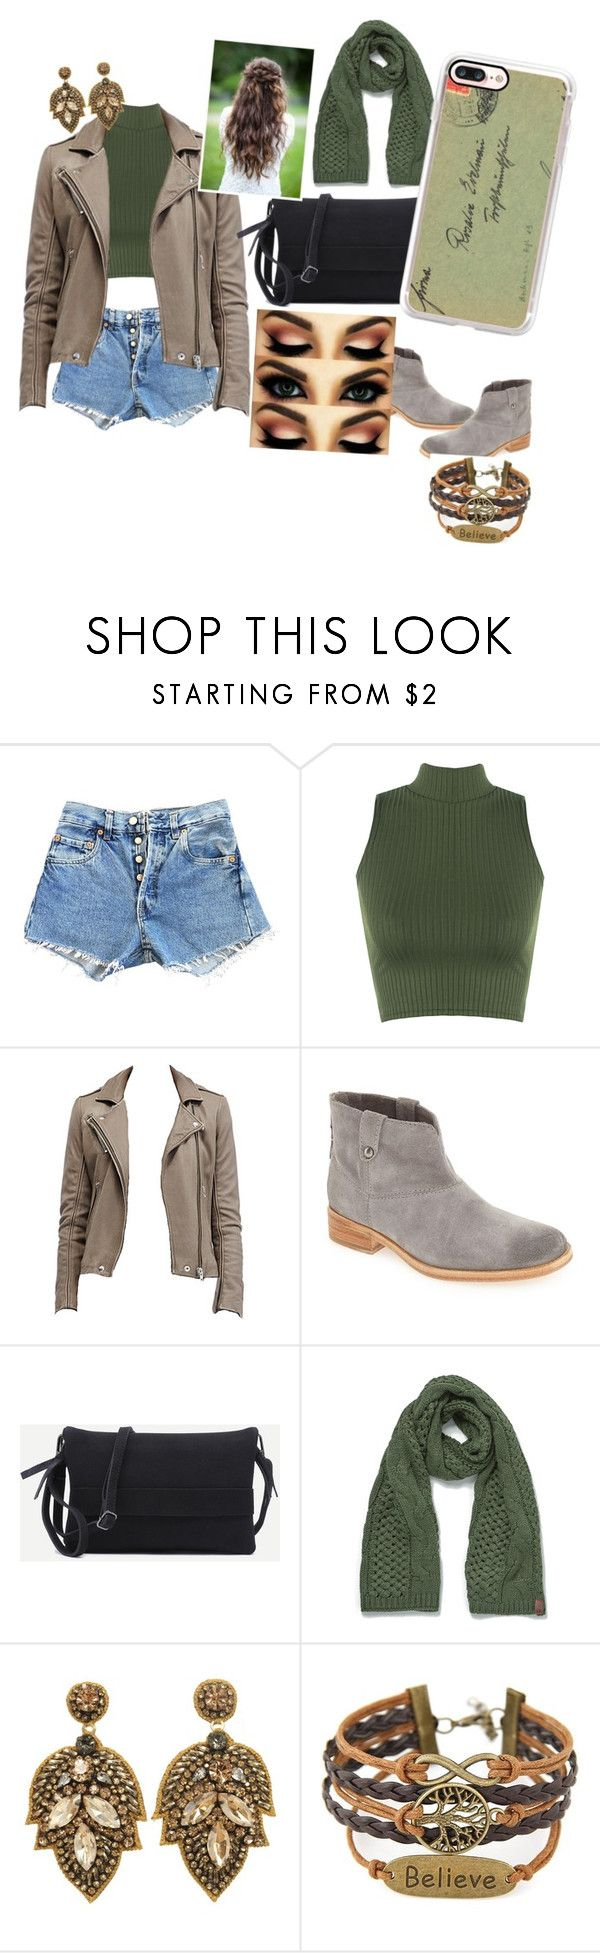 """Cute but easy"" by bobbysause ❤ liked on Polyvore featuring Levi's, WearAll, Johnston & Murphy, Superdry and Casetify"